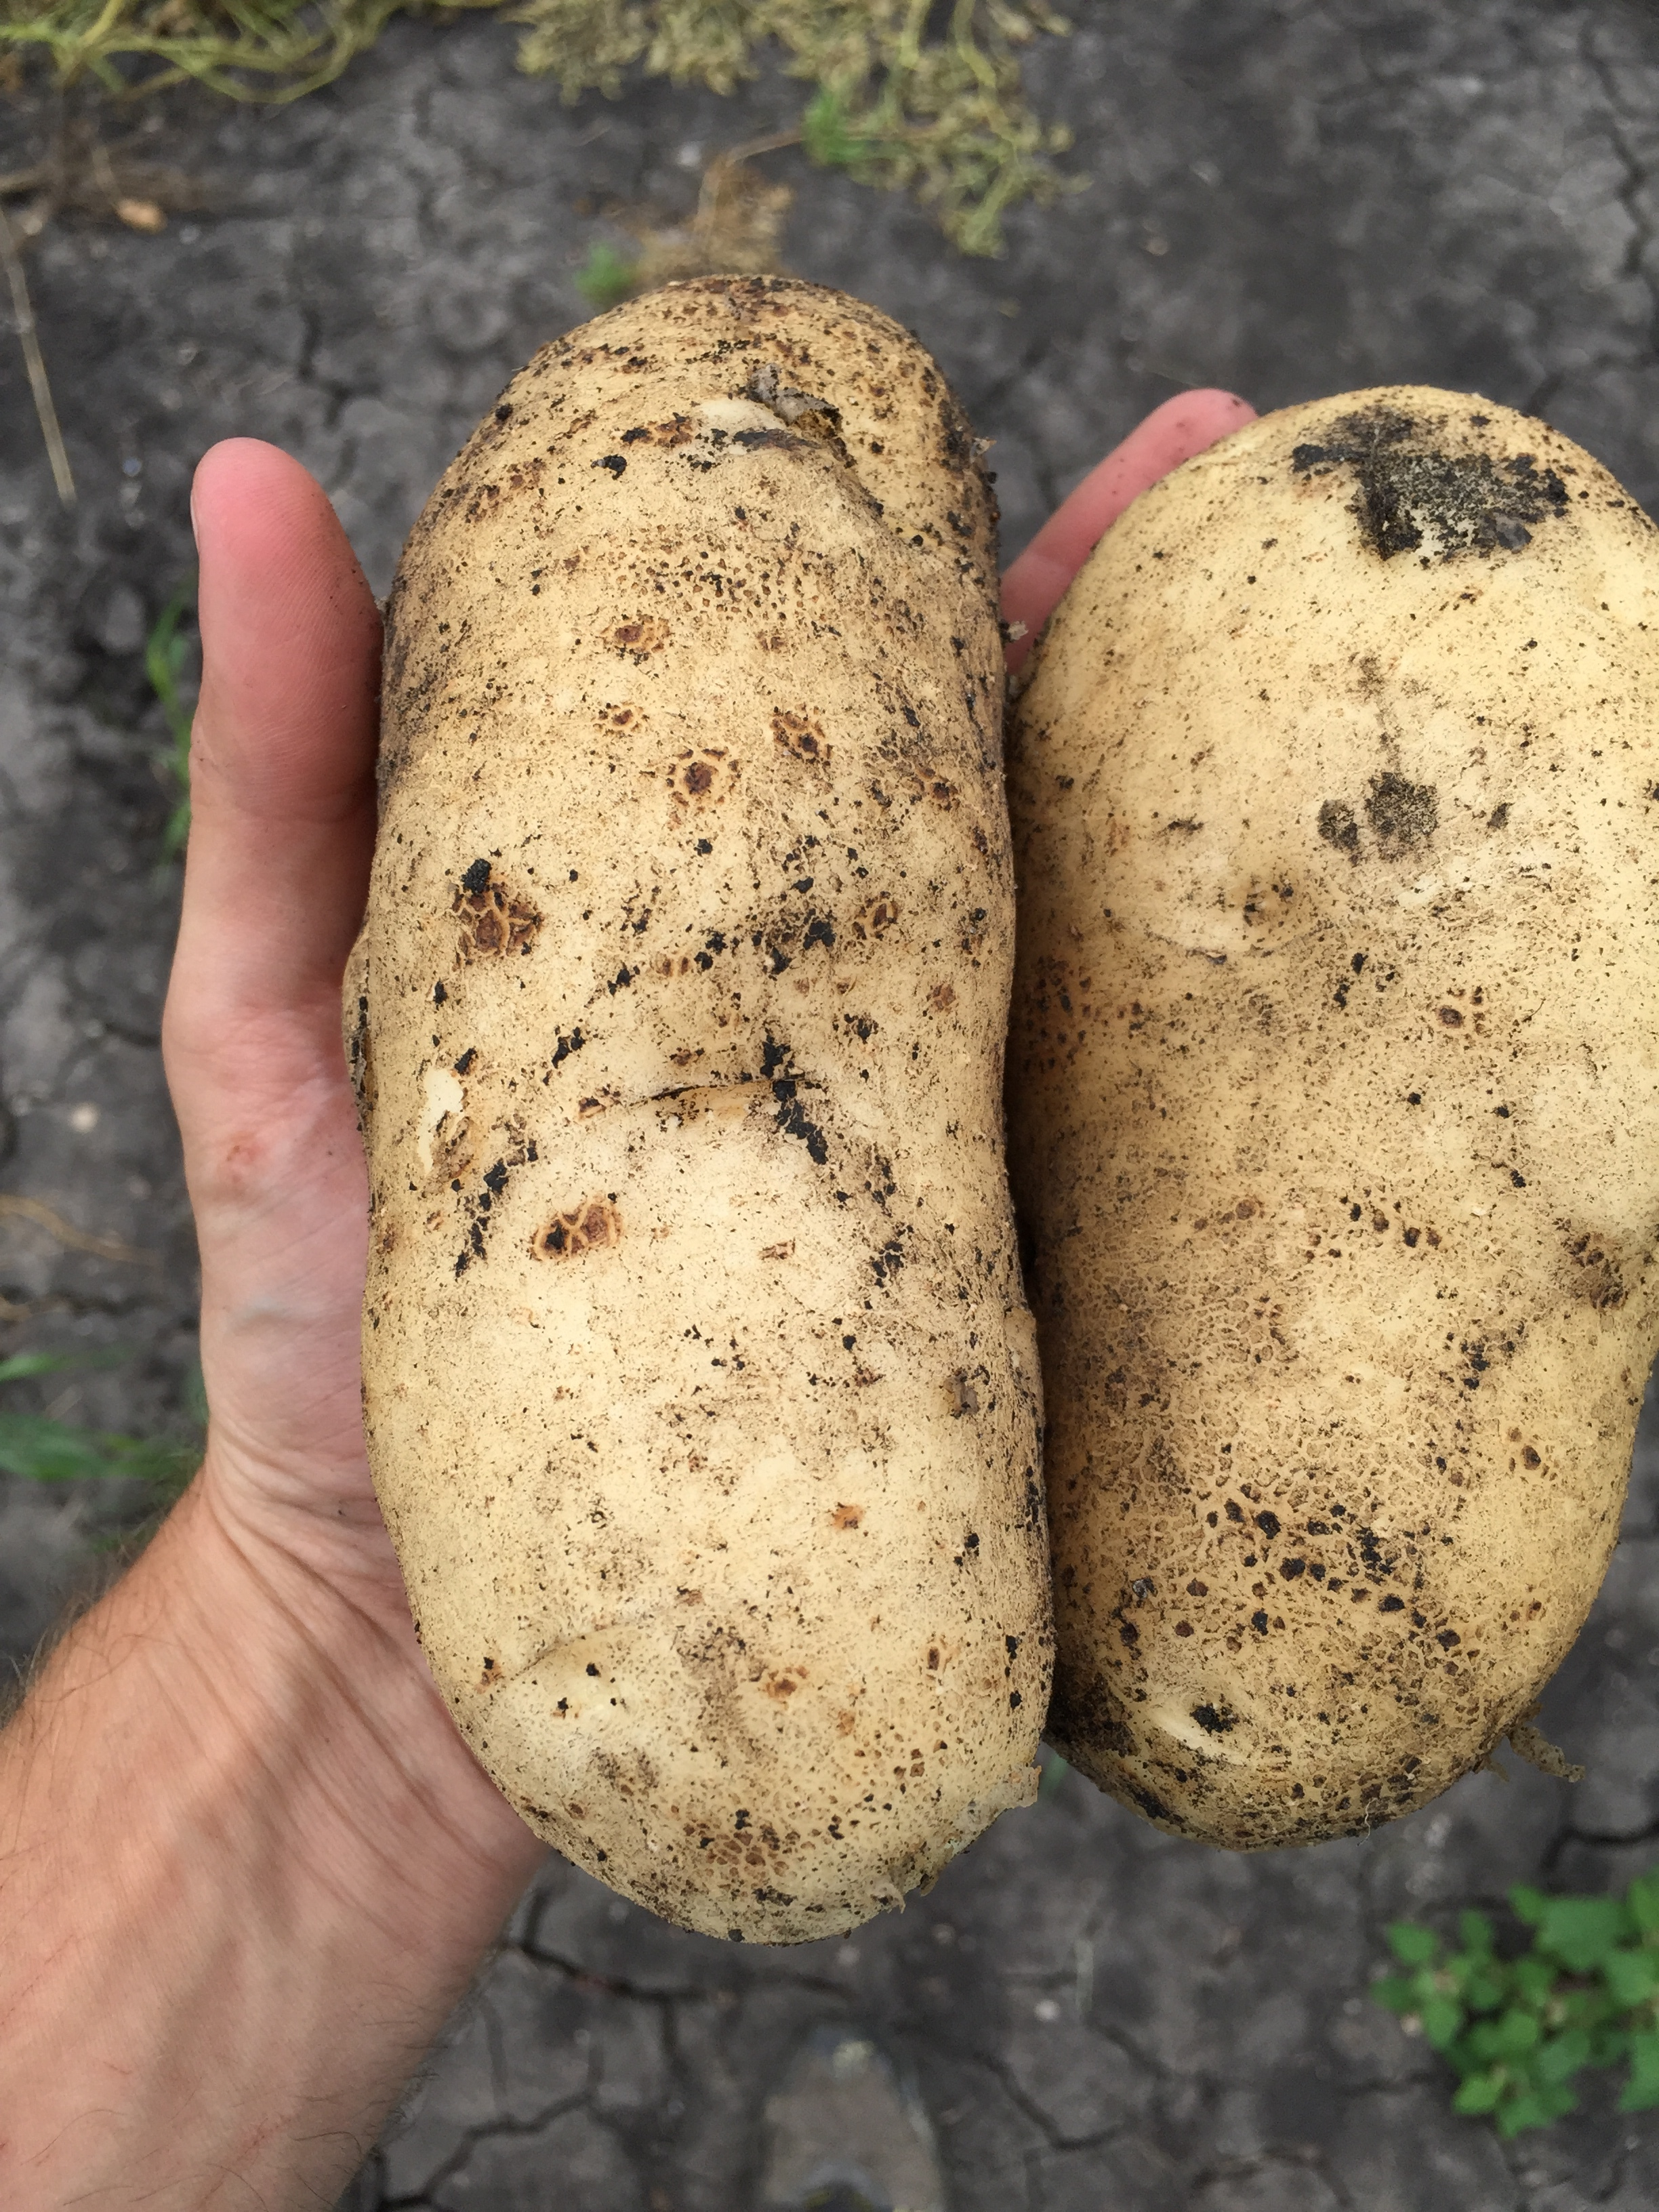 Grew some giant potatoes this year